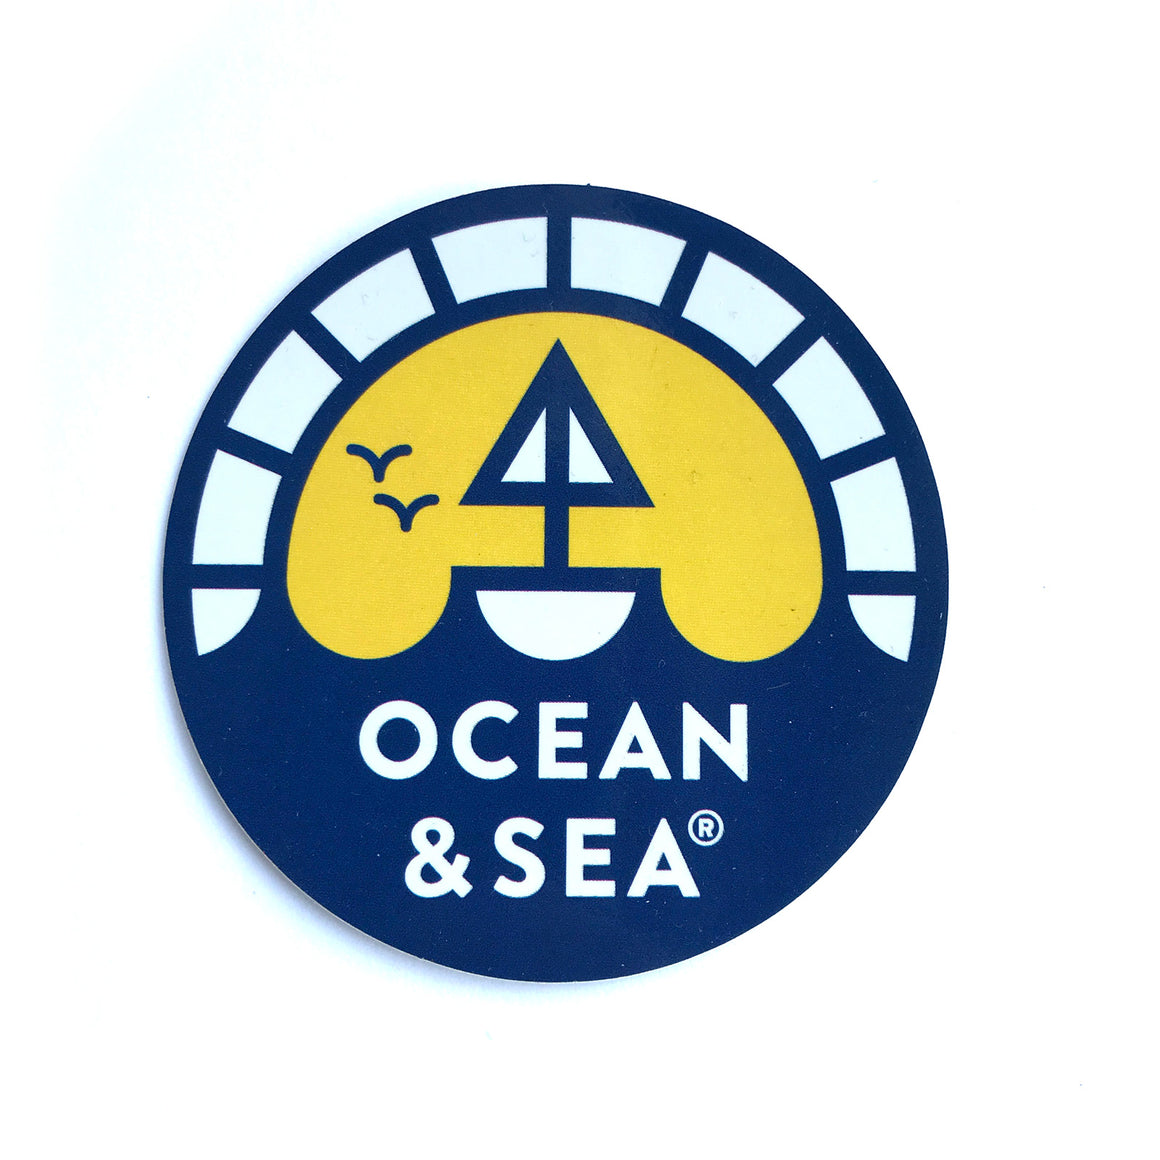 OCEAN & SEA | LOGO DECAL